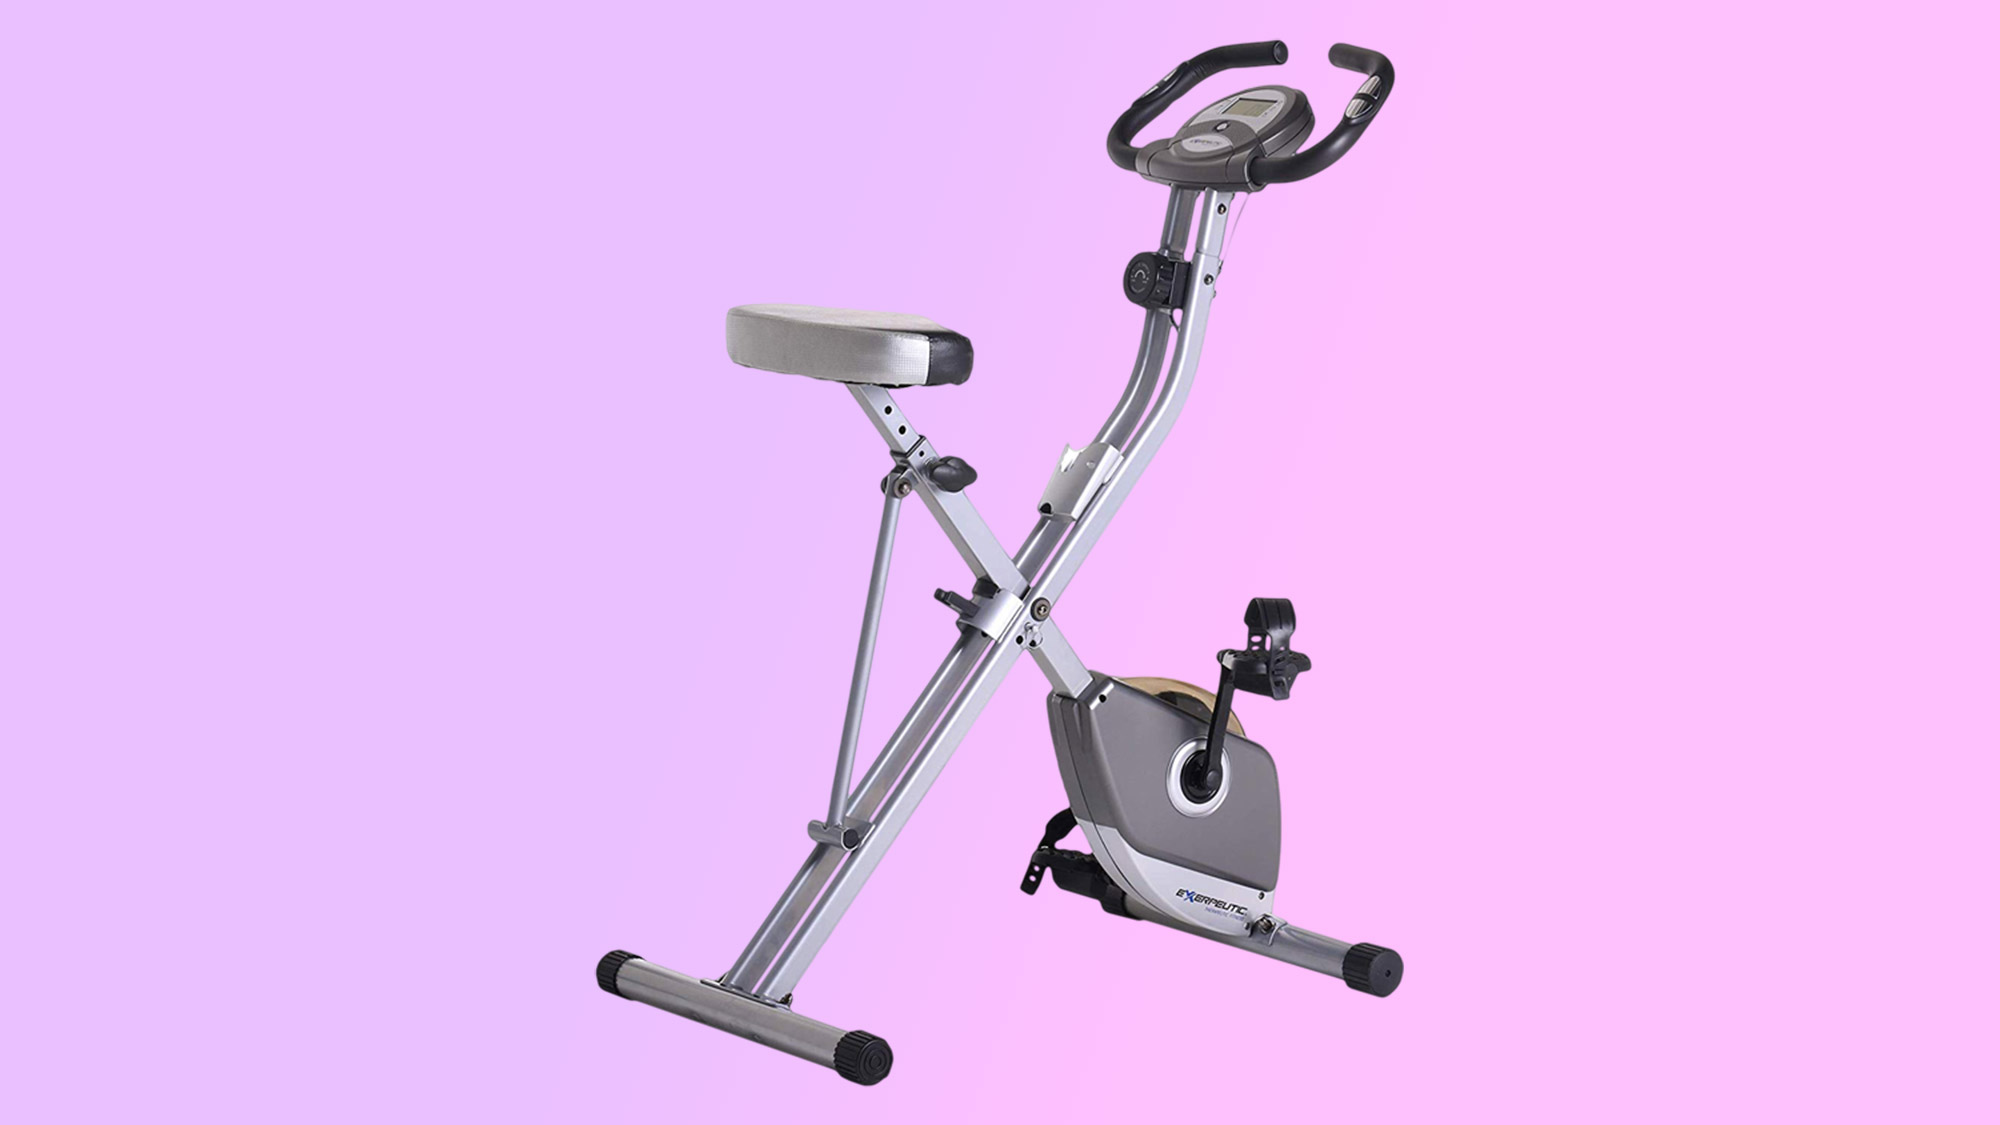 Best home gym equipment: Exerpeutic Folding Magnetic Upright Exercise Bike